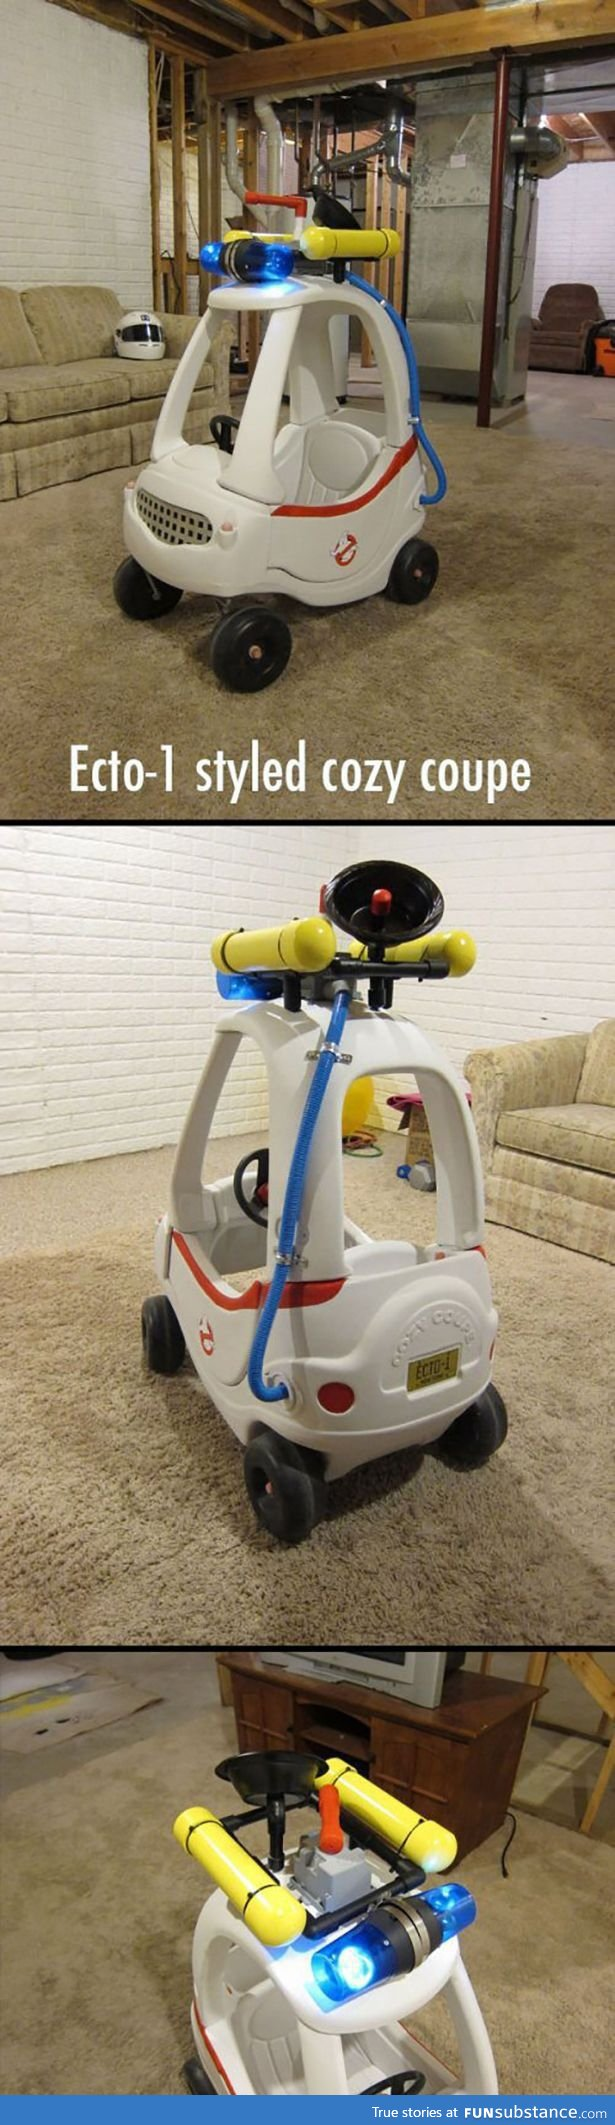 Ghostbusters toys car  Funny pics memes and trending stories  Funny pics Memes and Stuffing